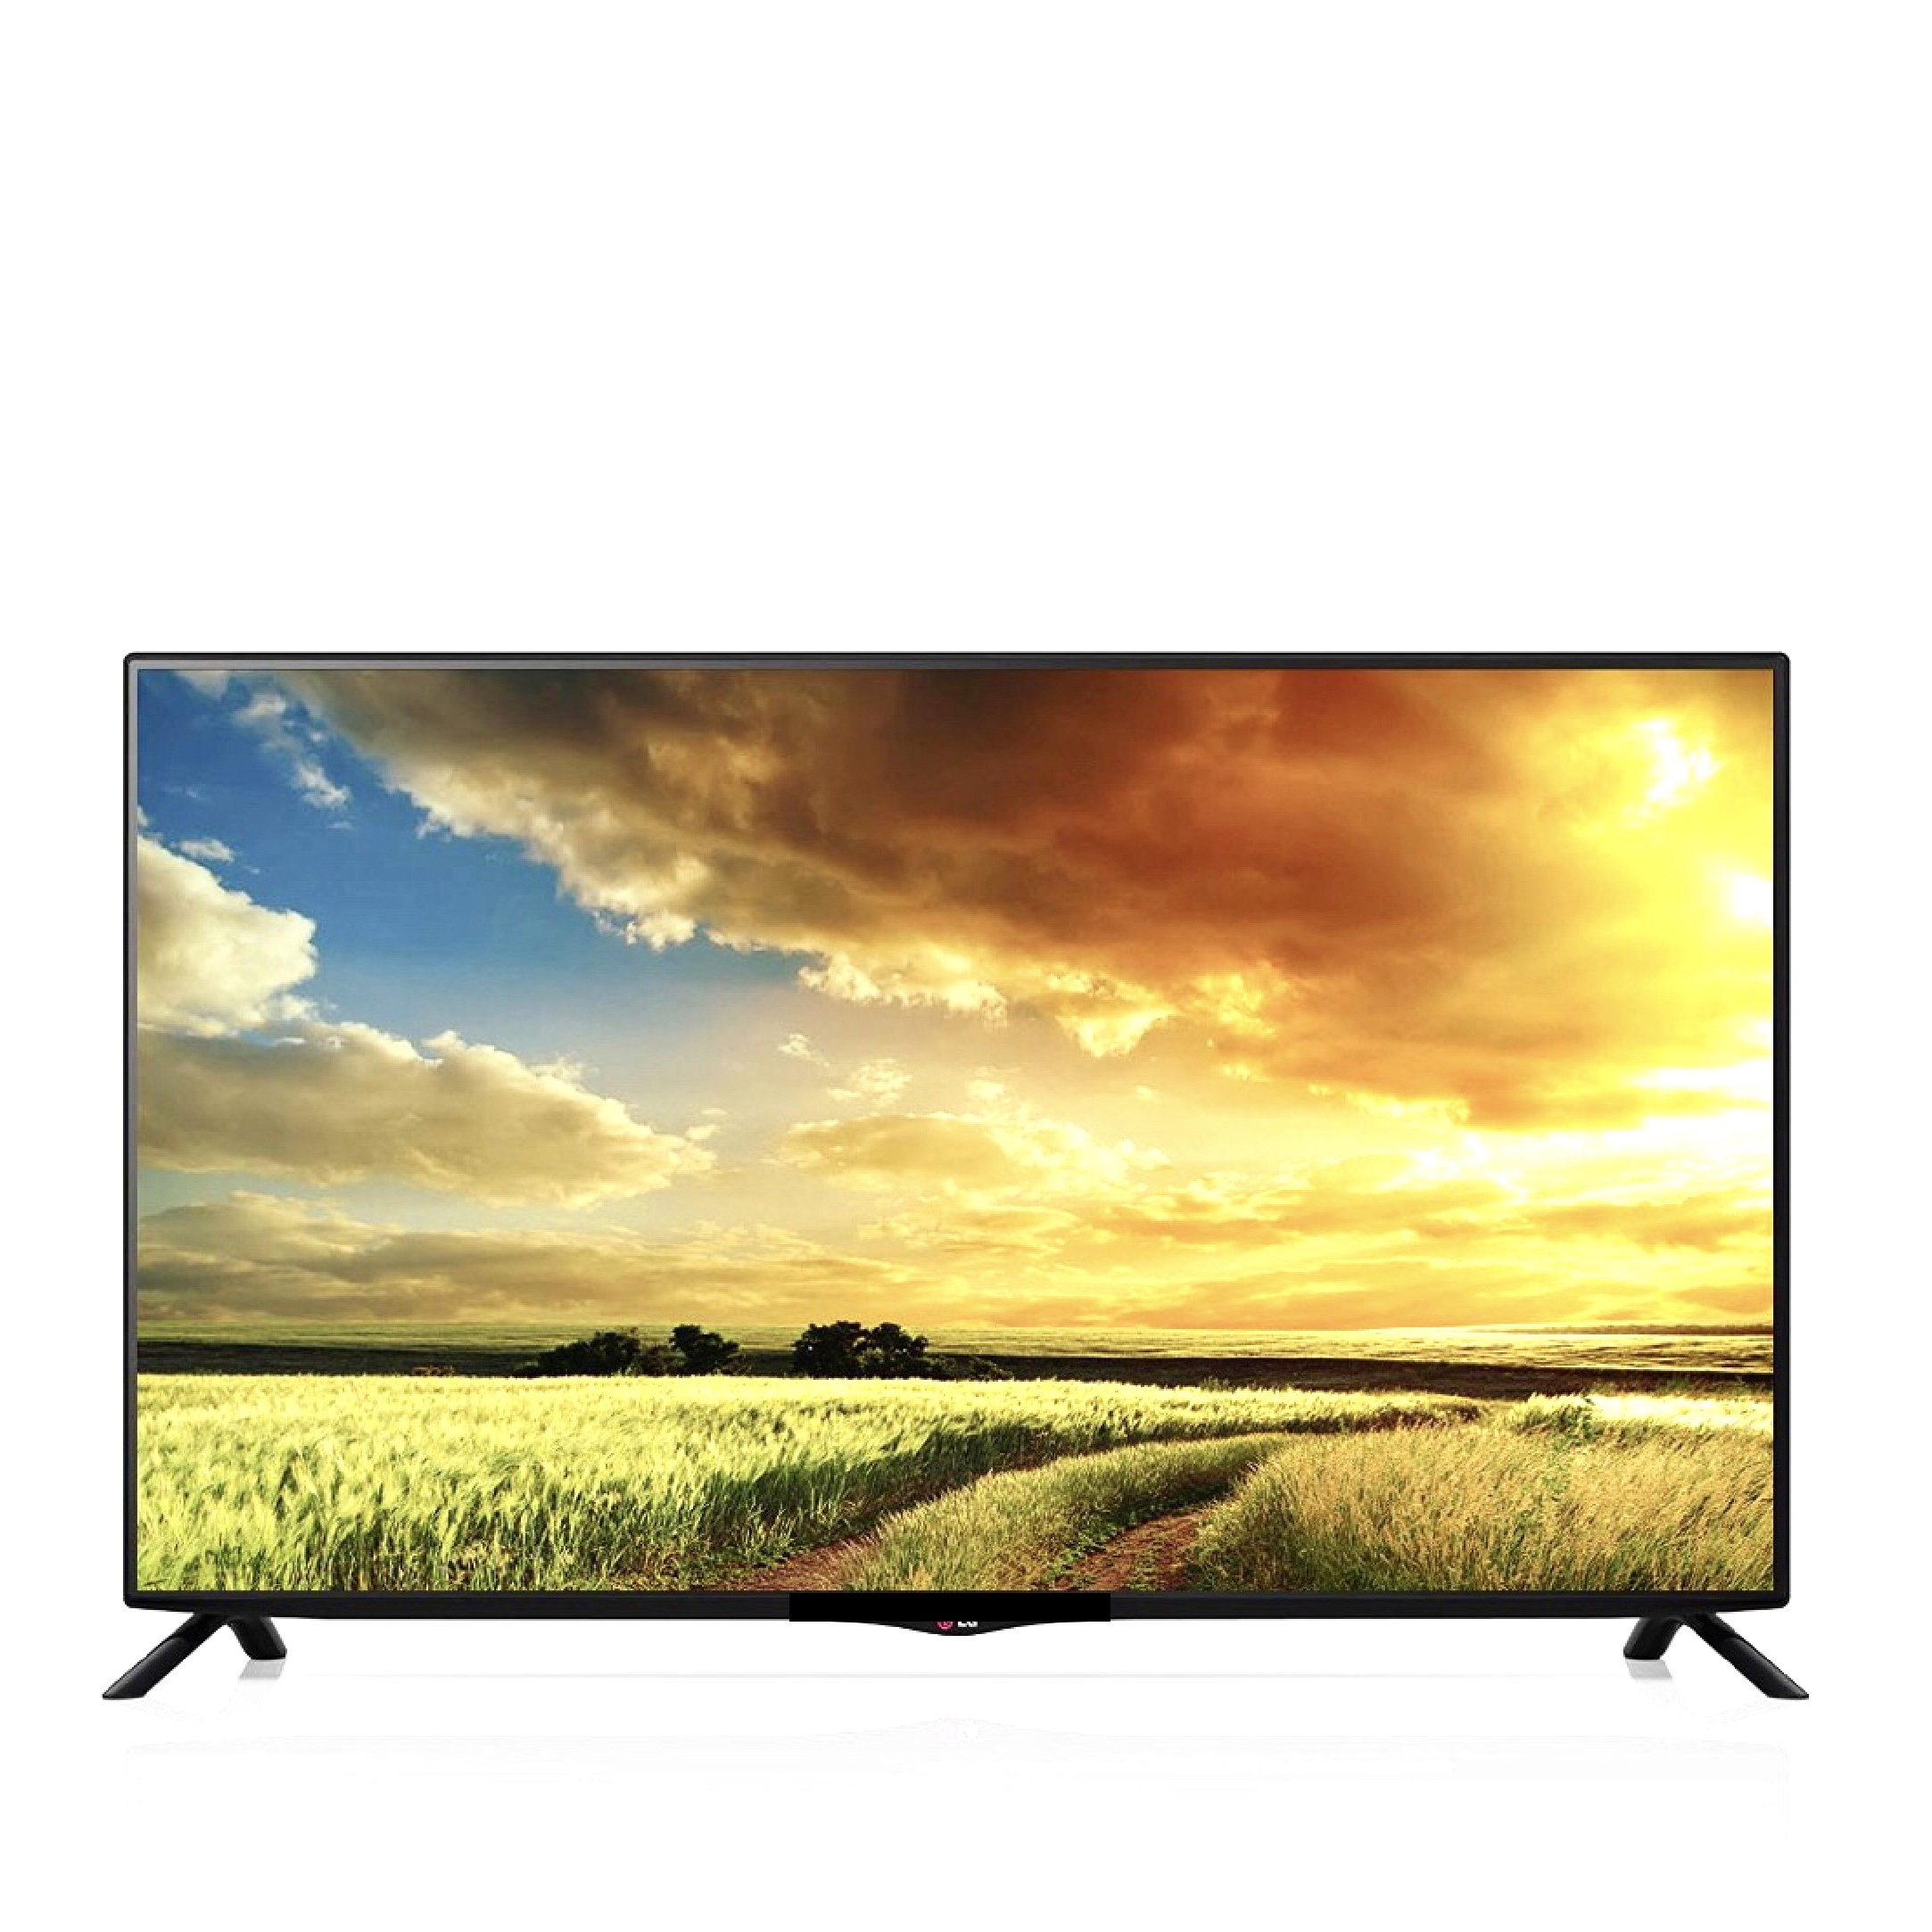 """OLIVE LED TV 24"""" with FHD,HDMI,USE, pc iNPUT"""